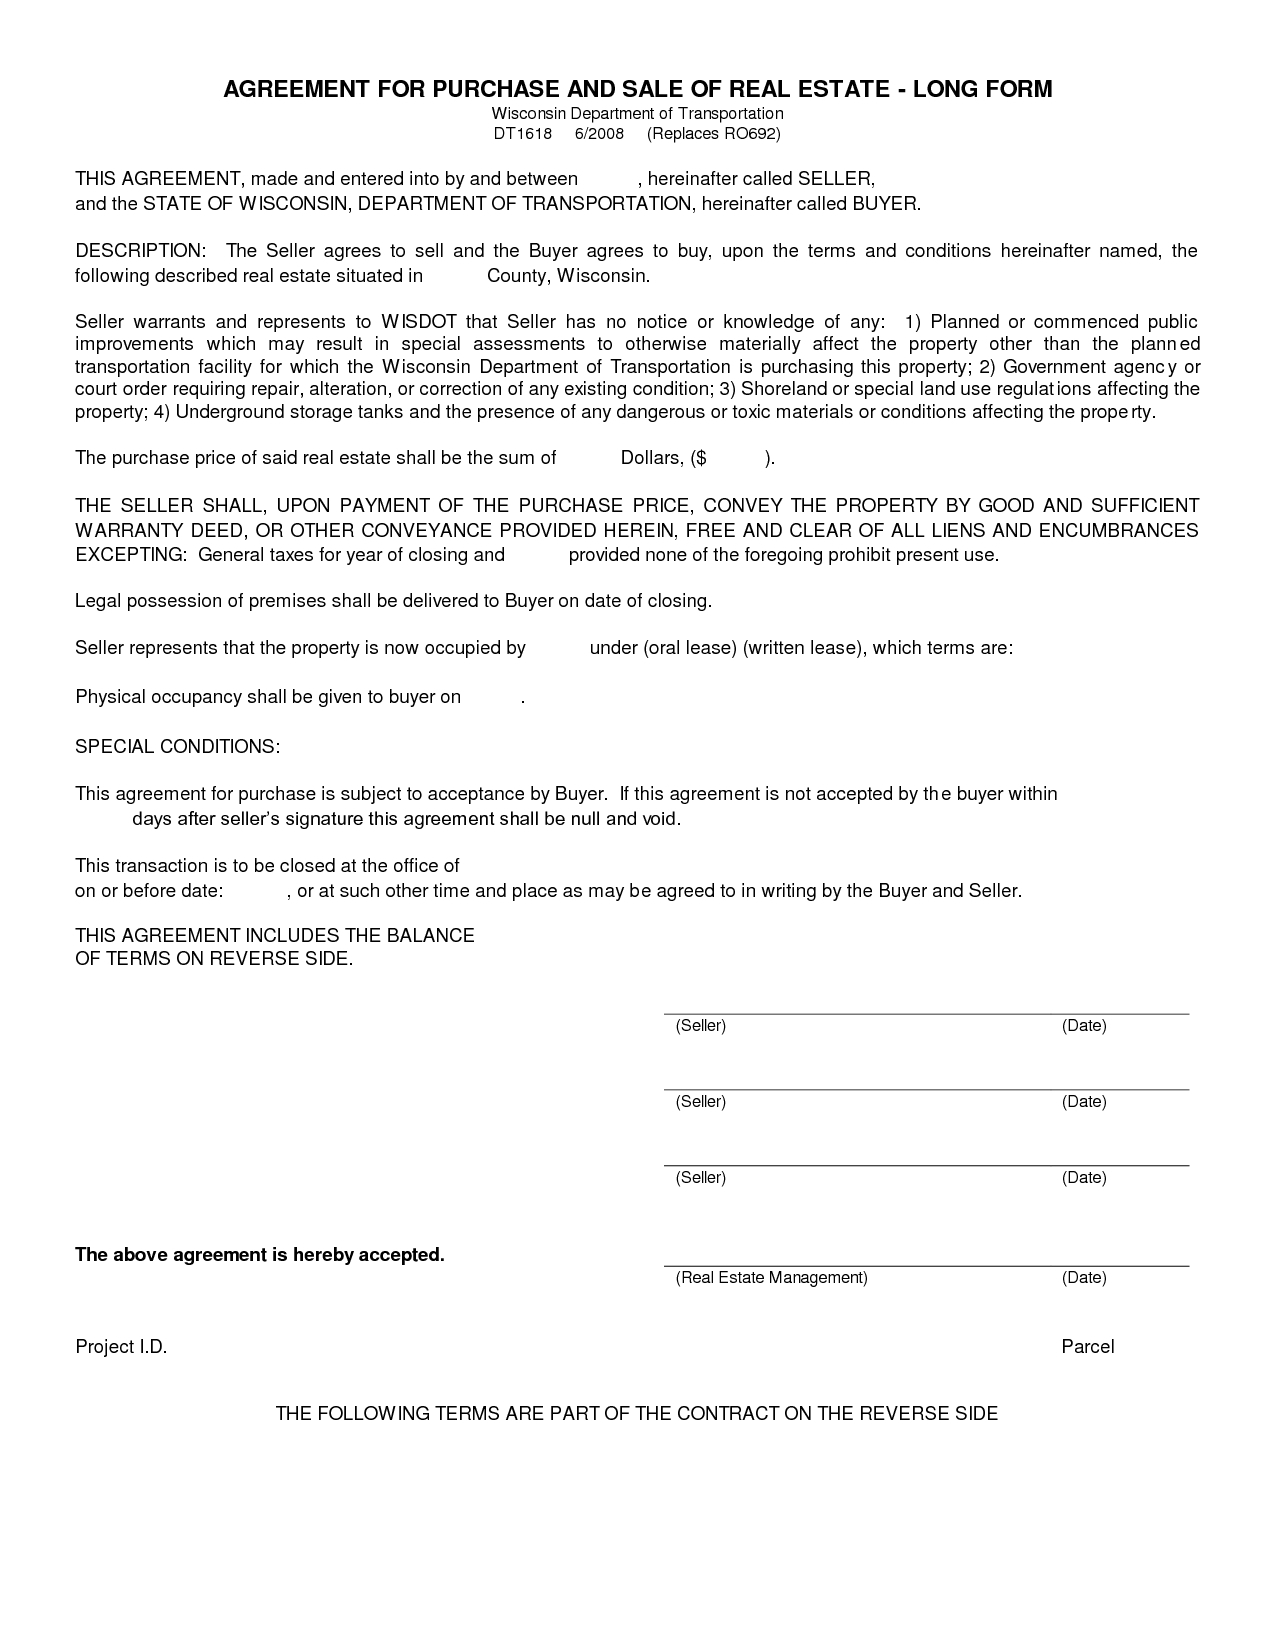 Free Blank Purchase Agreement Form Images - Agreement To Purchase - Free Printable Real Estate Purchase Agreement